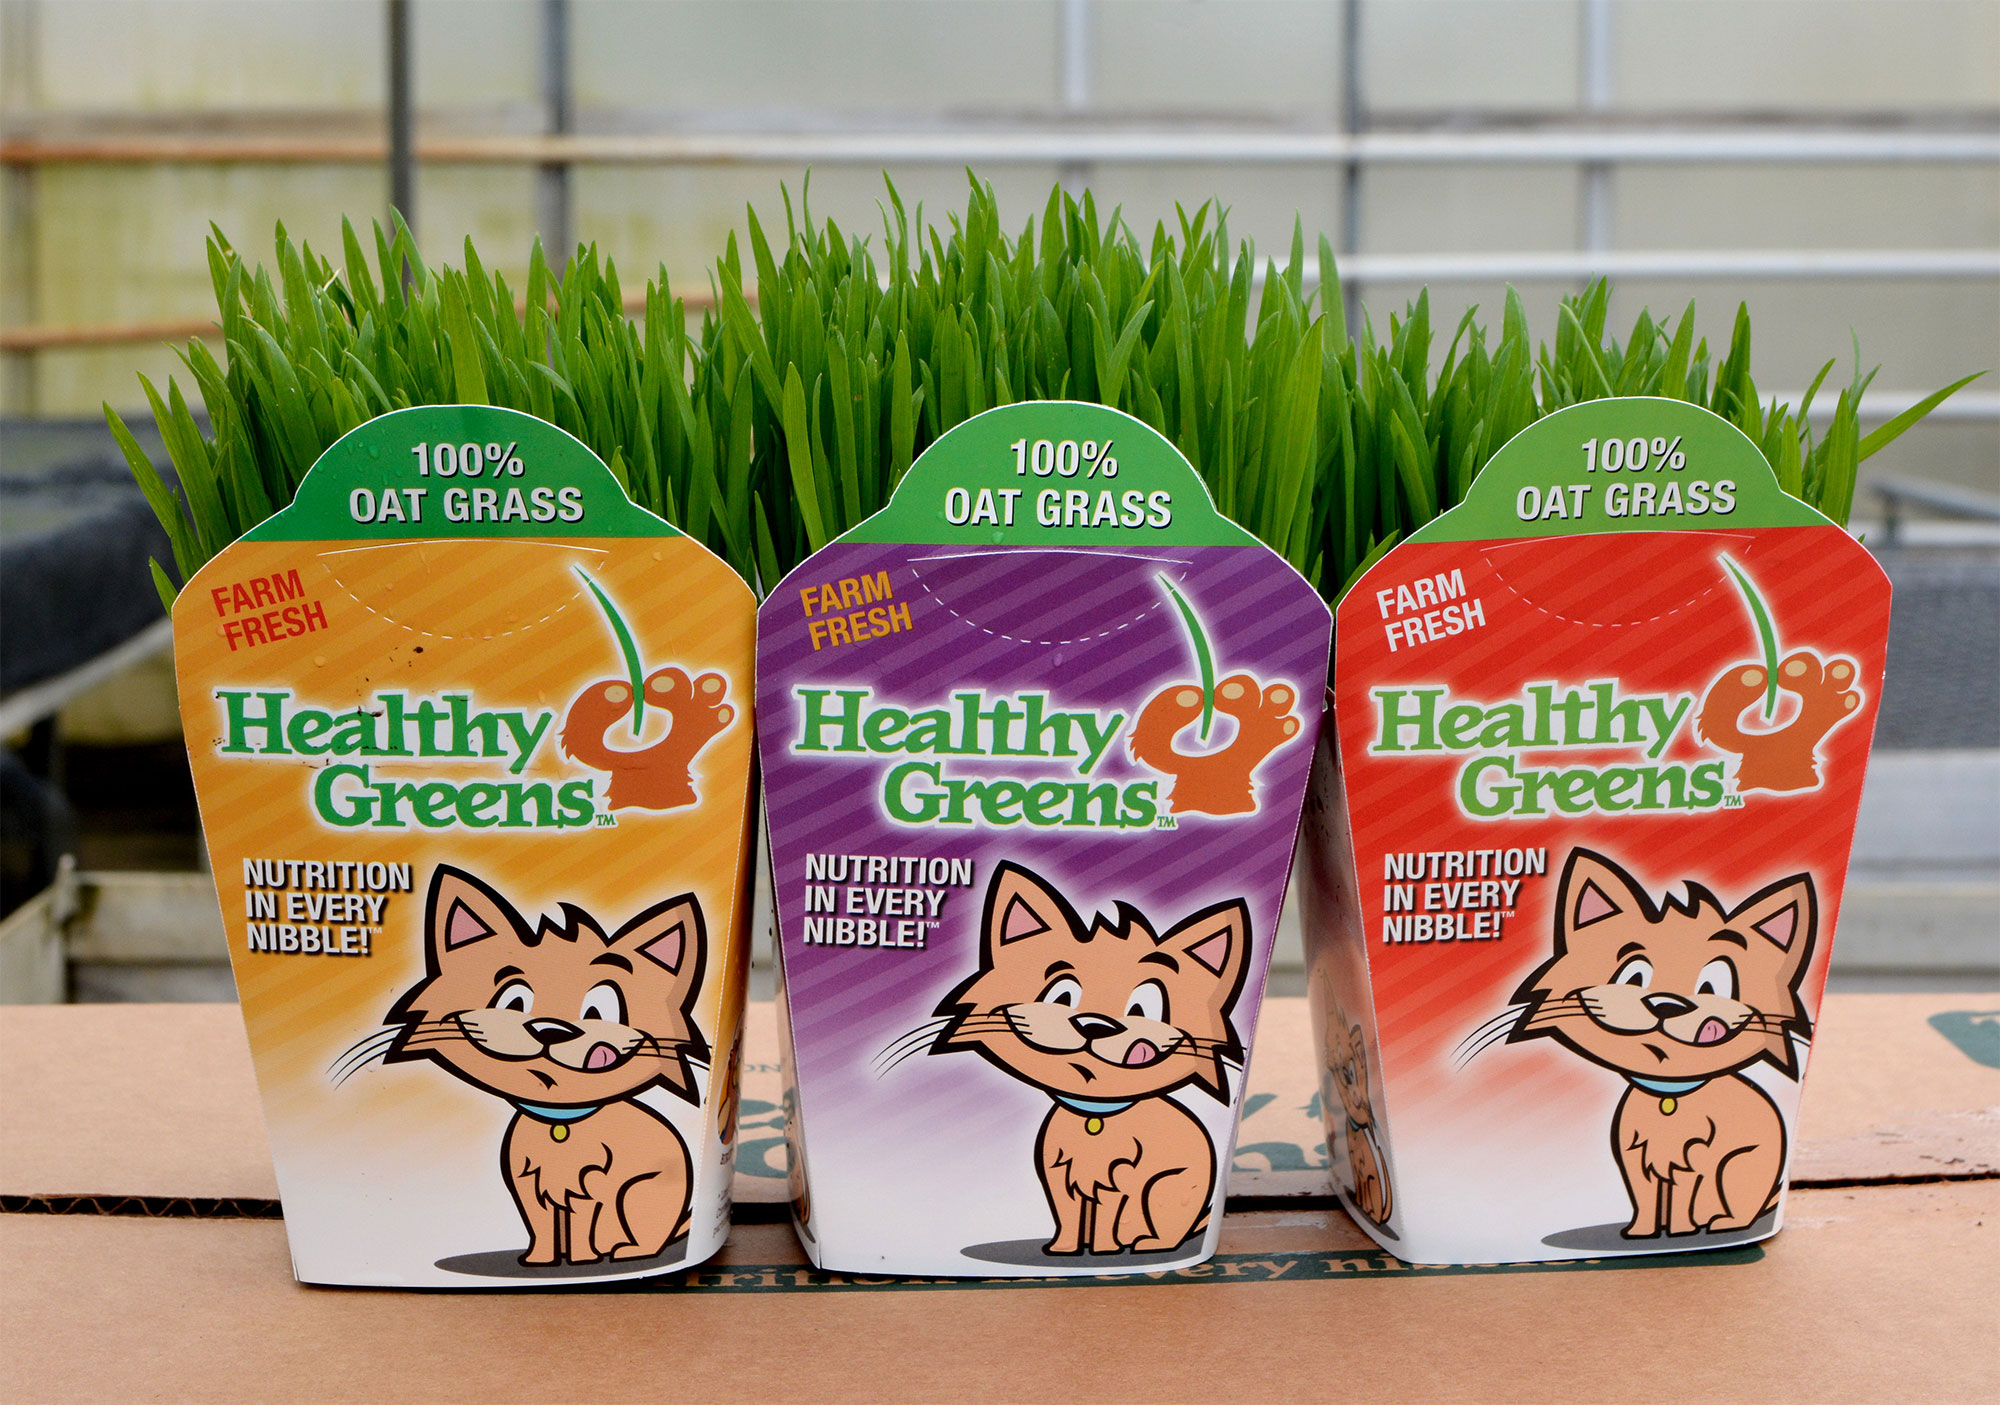 agripet-healthy-greens-cat-dog-pet-grass-04